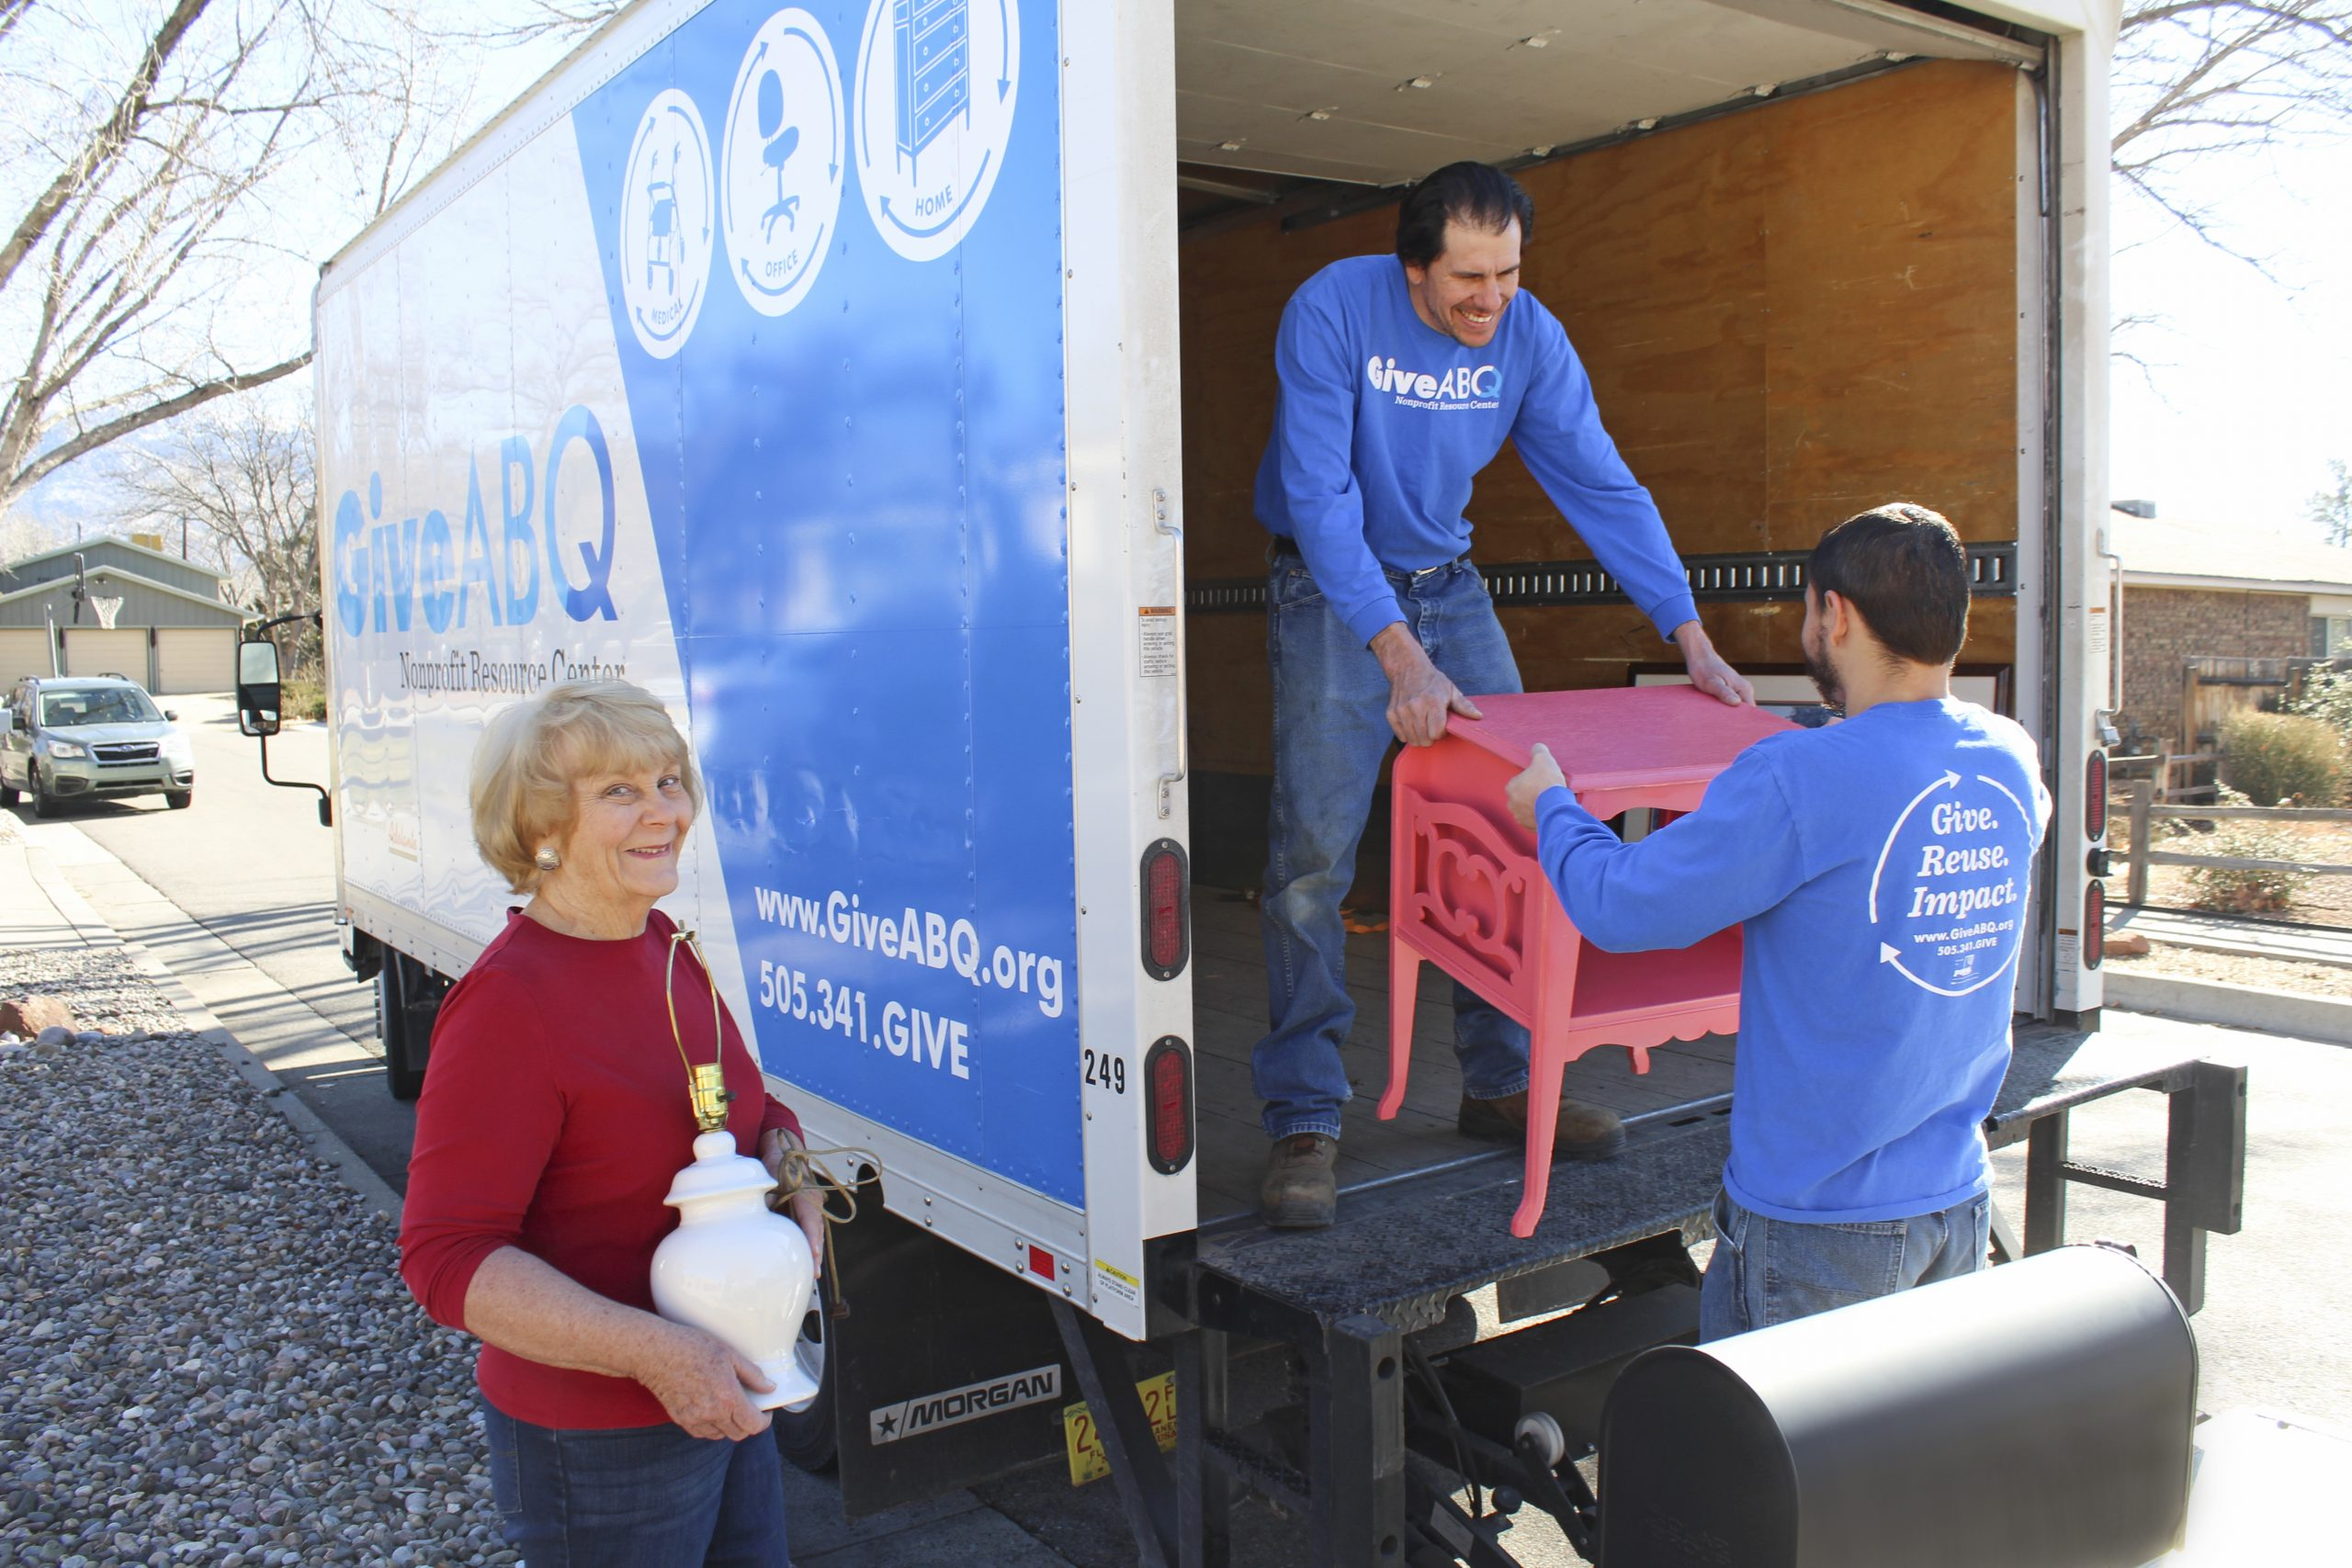 A woman stands to the left of a Give ABQ truck. She is holding a lamp. Two GiveABQ employees are loading a nightstand into the truck. The woman is smiling, happy t o be donating.